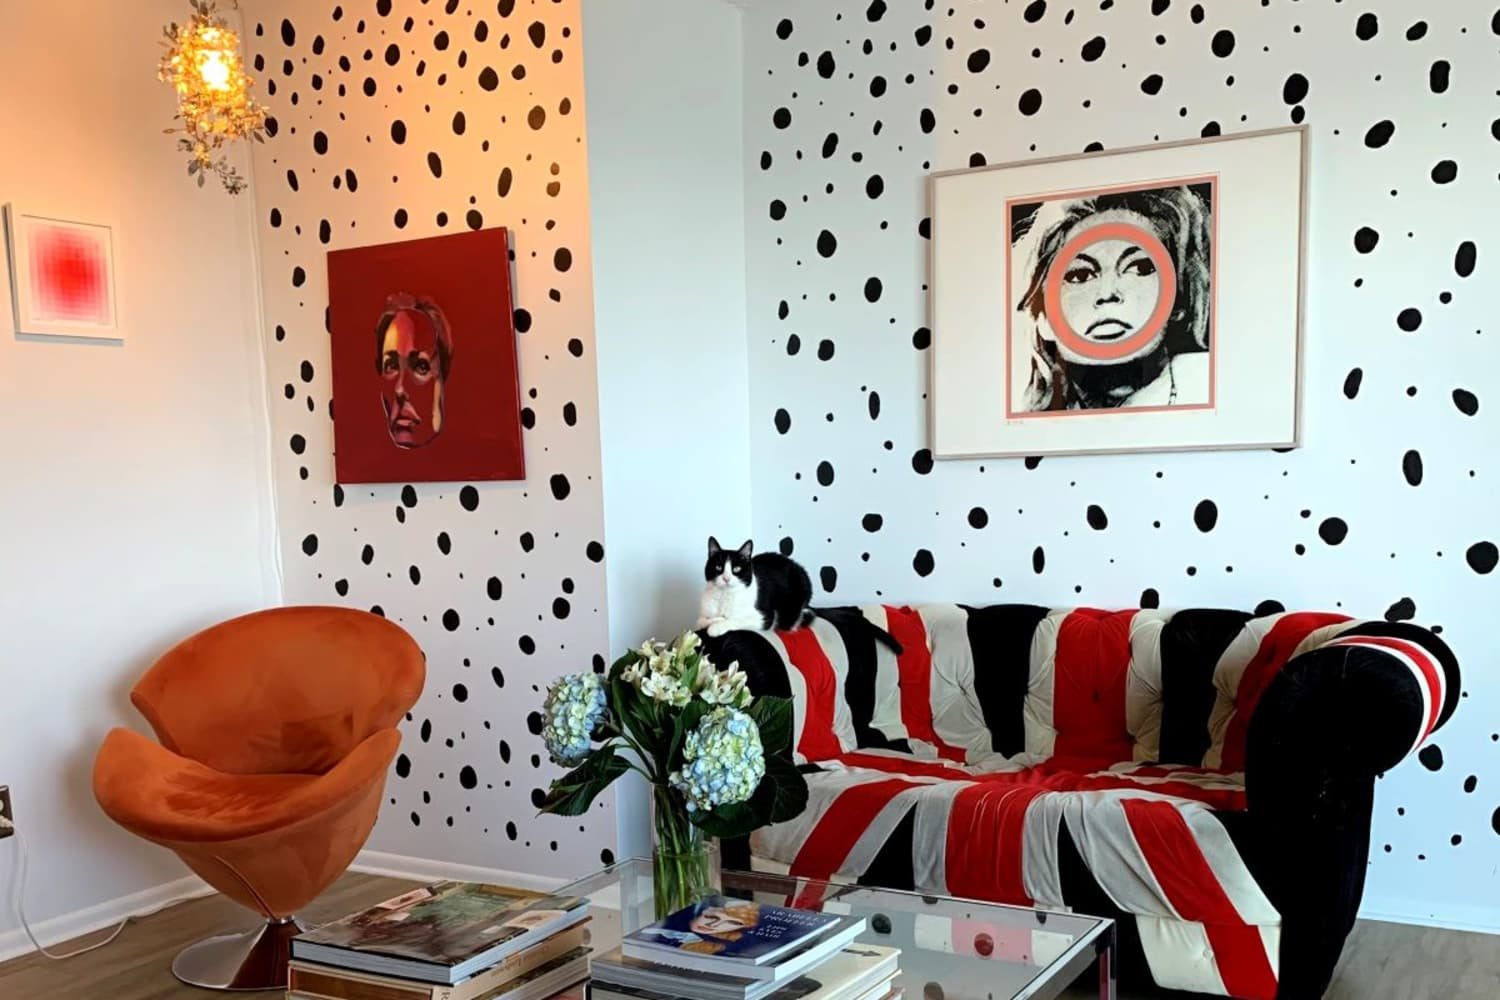 This Condo Has Hand-Painted Patterned Walls and Serious Rock 'n' Roll Vibes